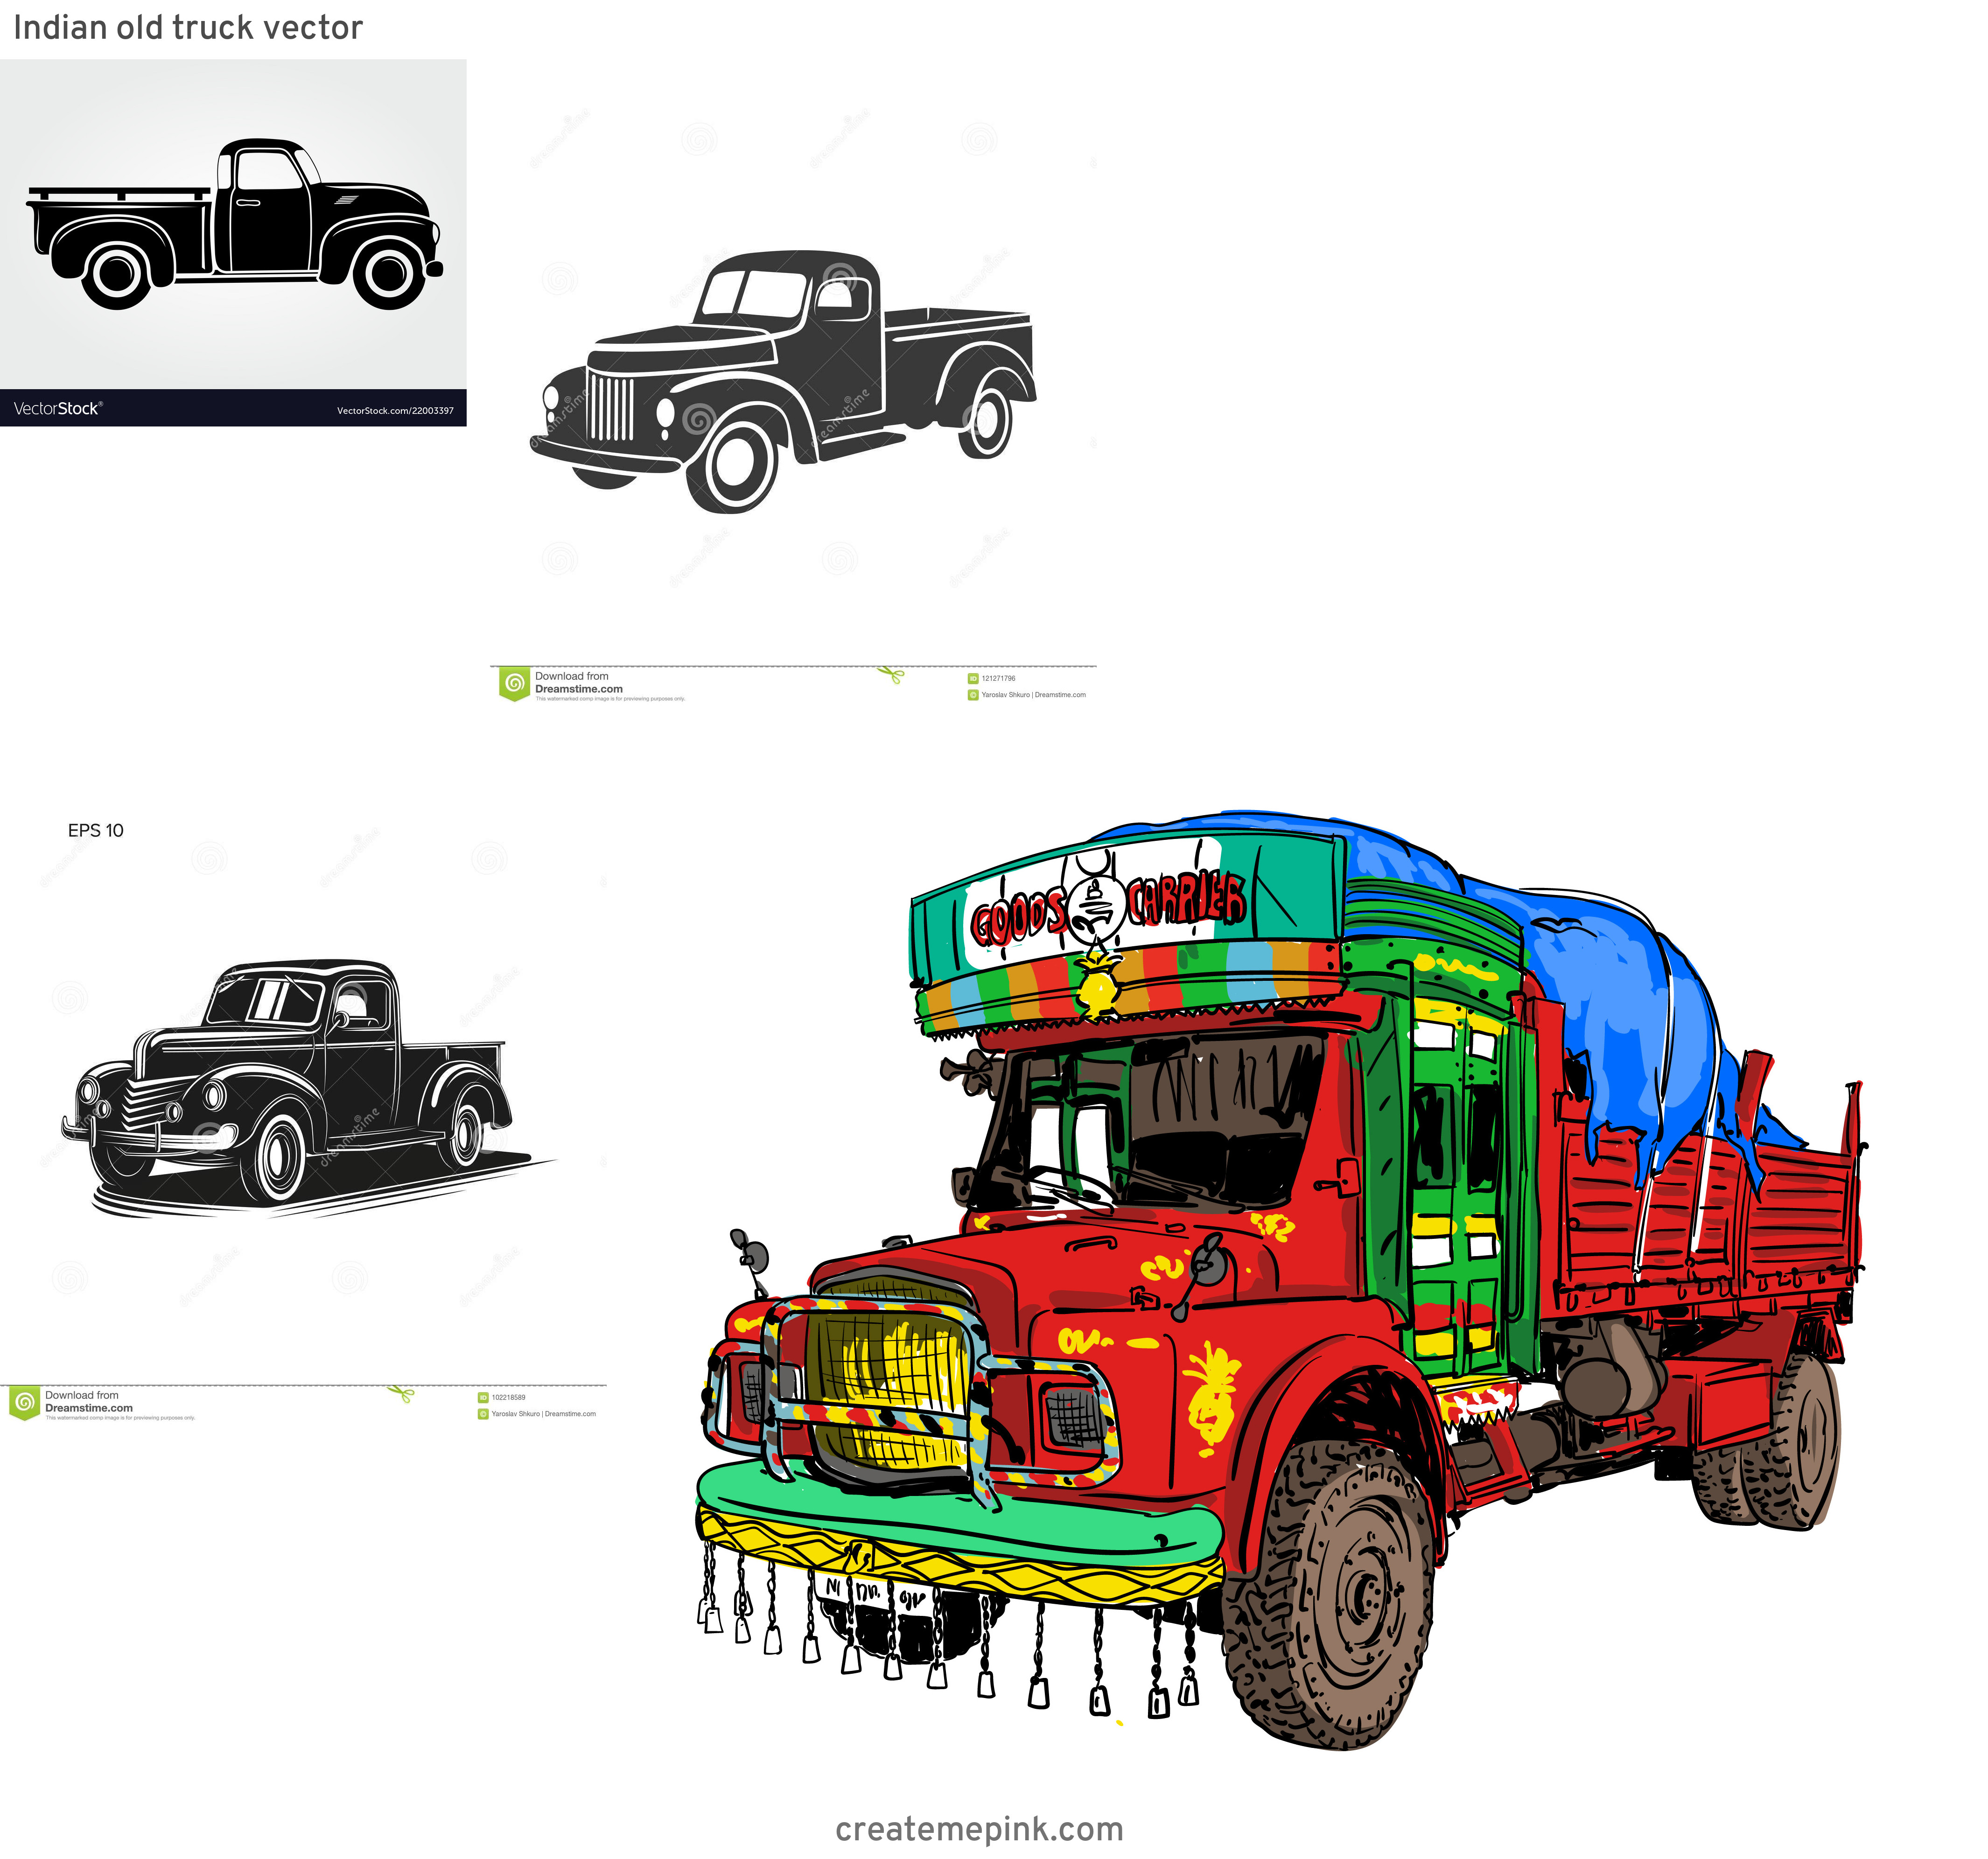 Old Truck Vector: Indian Old Truck Vector